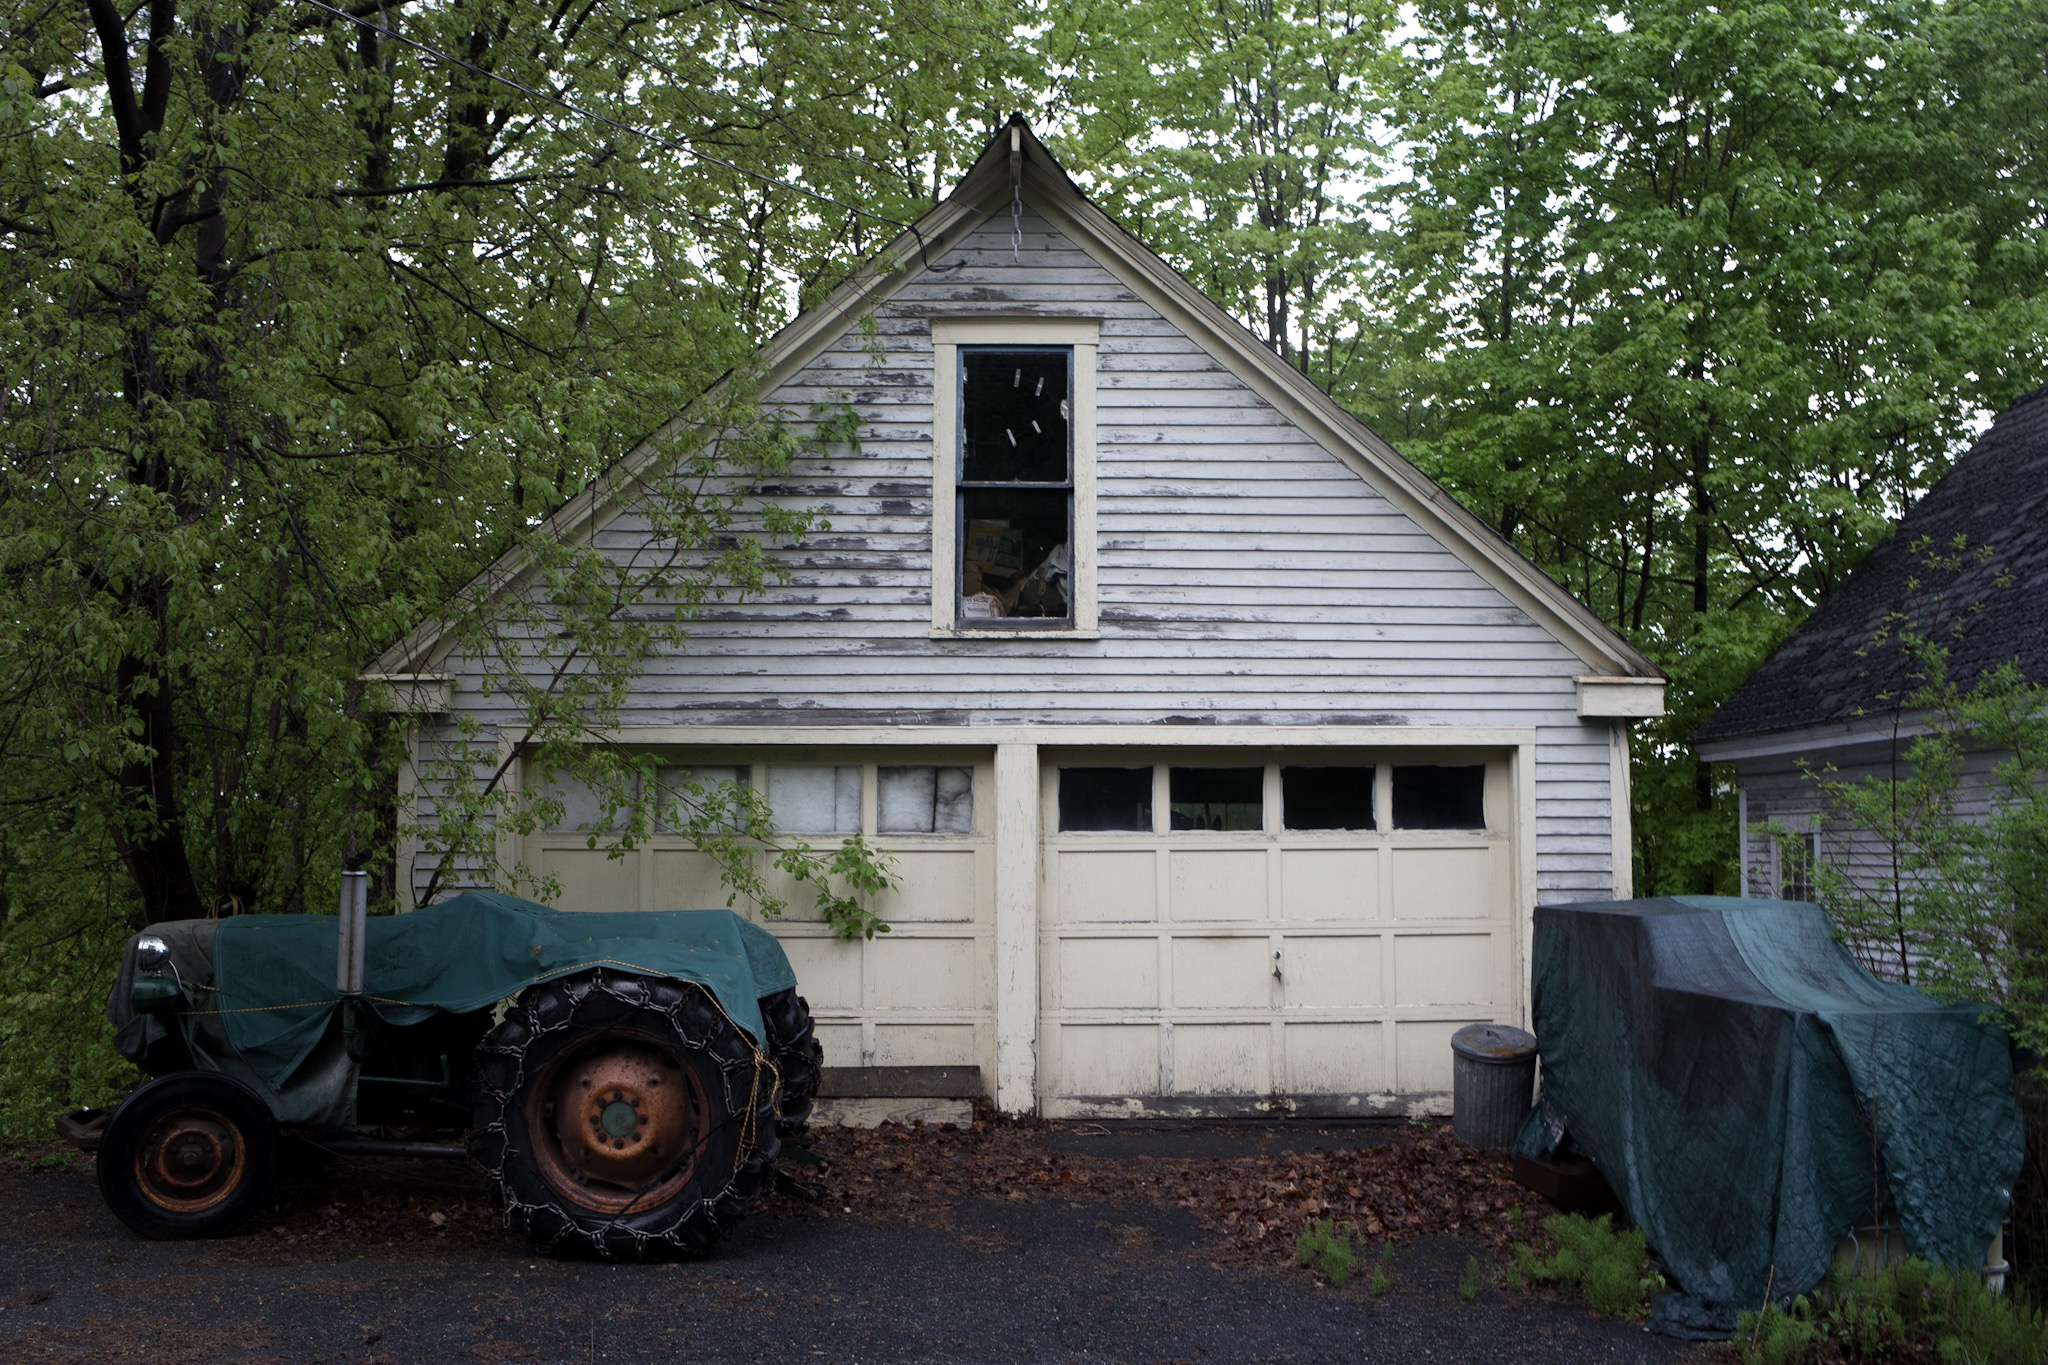 Garage and Tractor